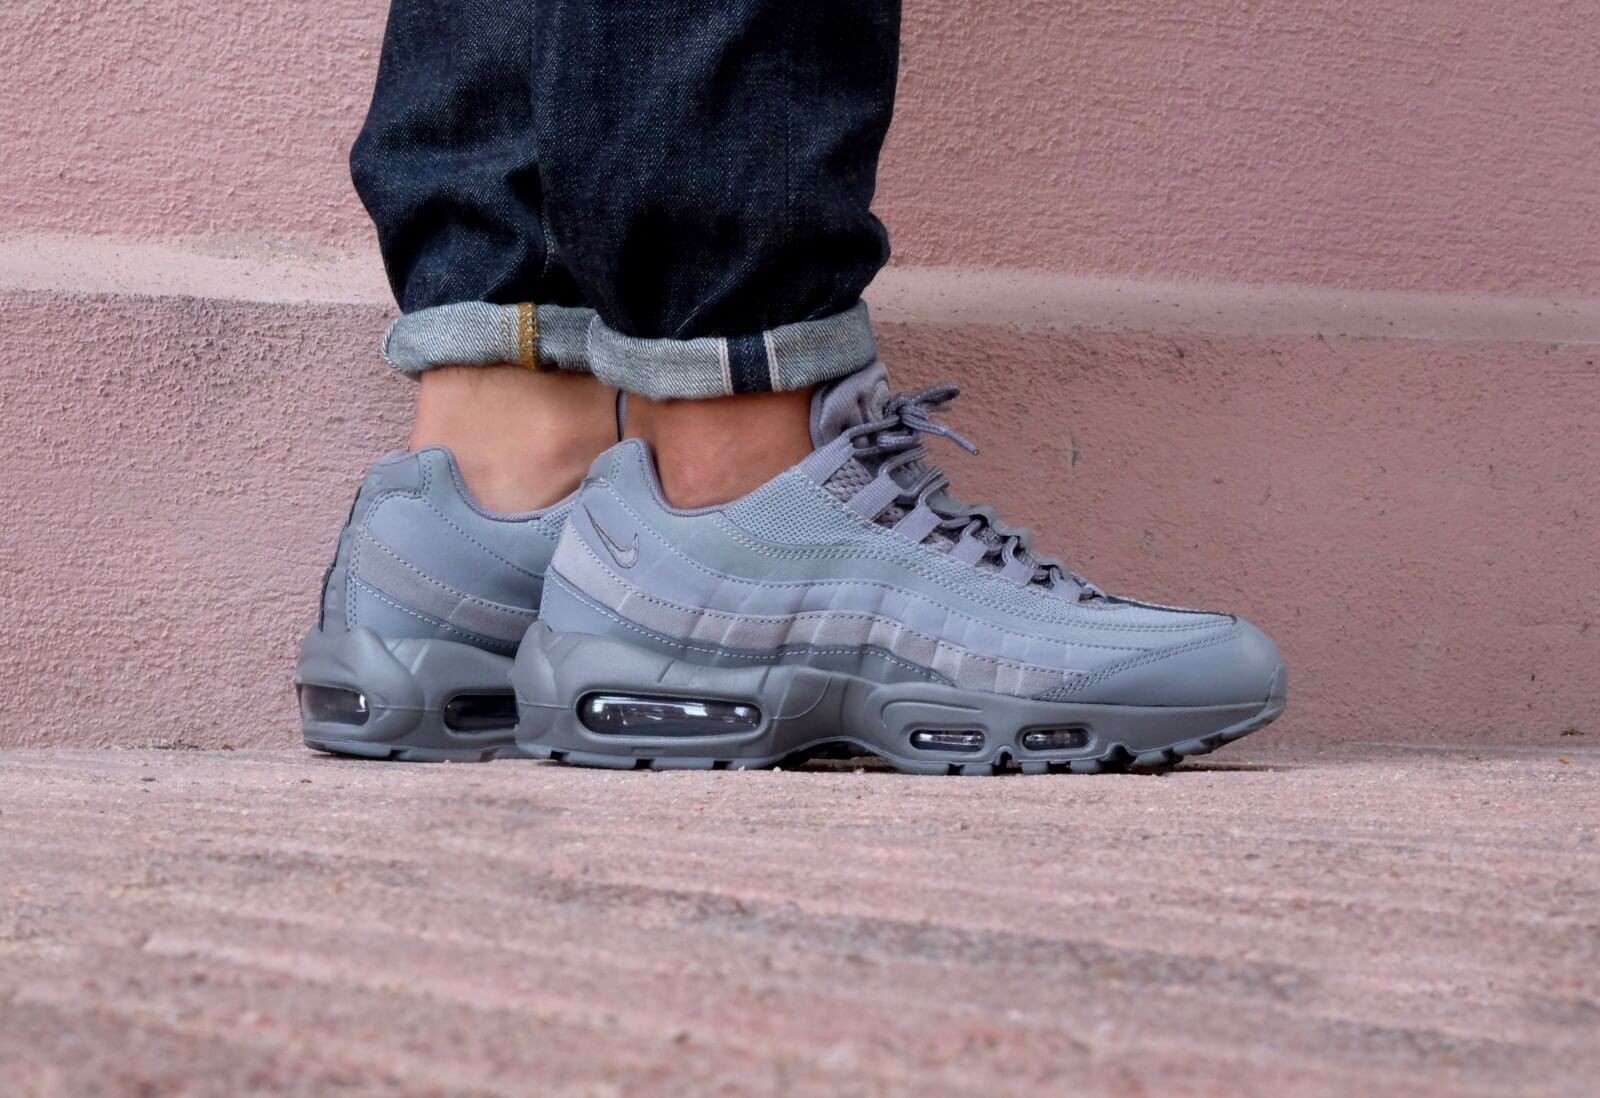 all grey 95s